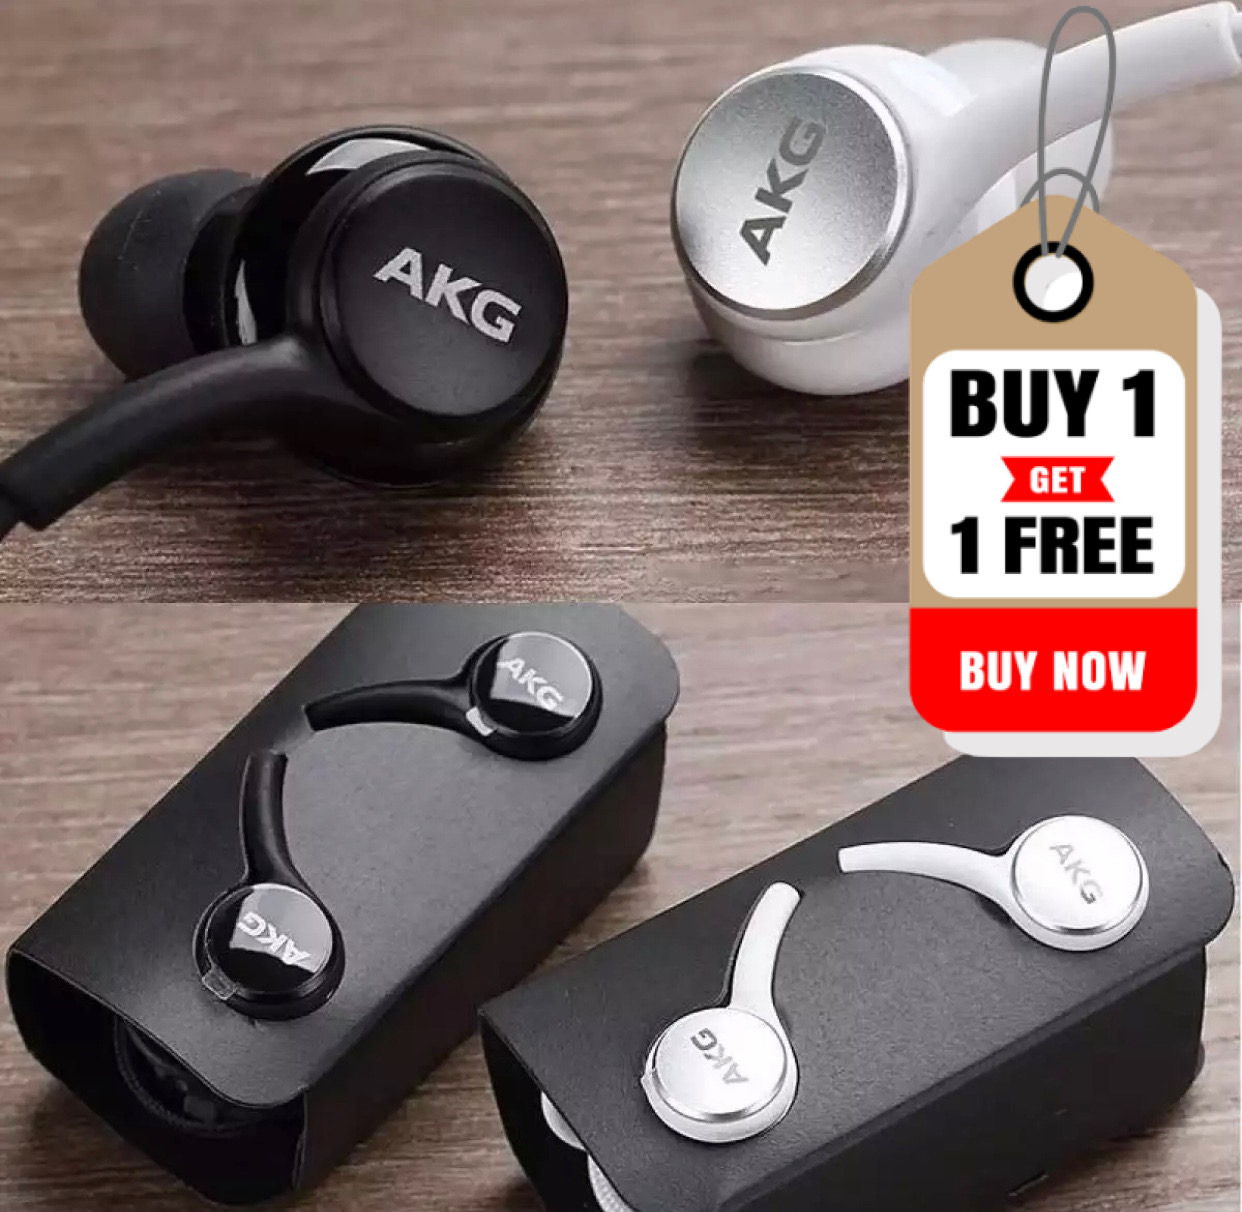 BUY 1 GET 1 FREE Superb Bass AKG_S10 Earphones Handsfree - 3.5mm Jack - Supported with all devices